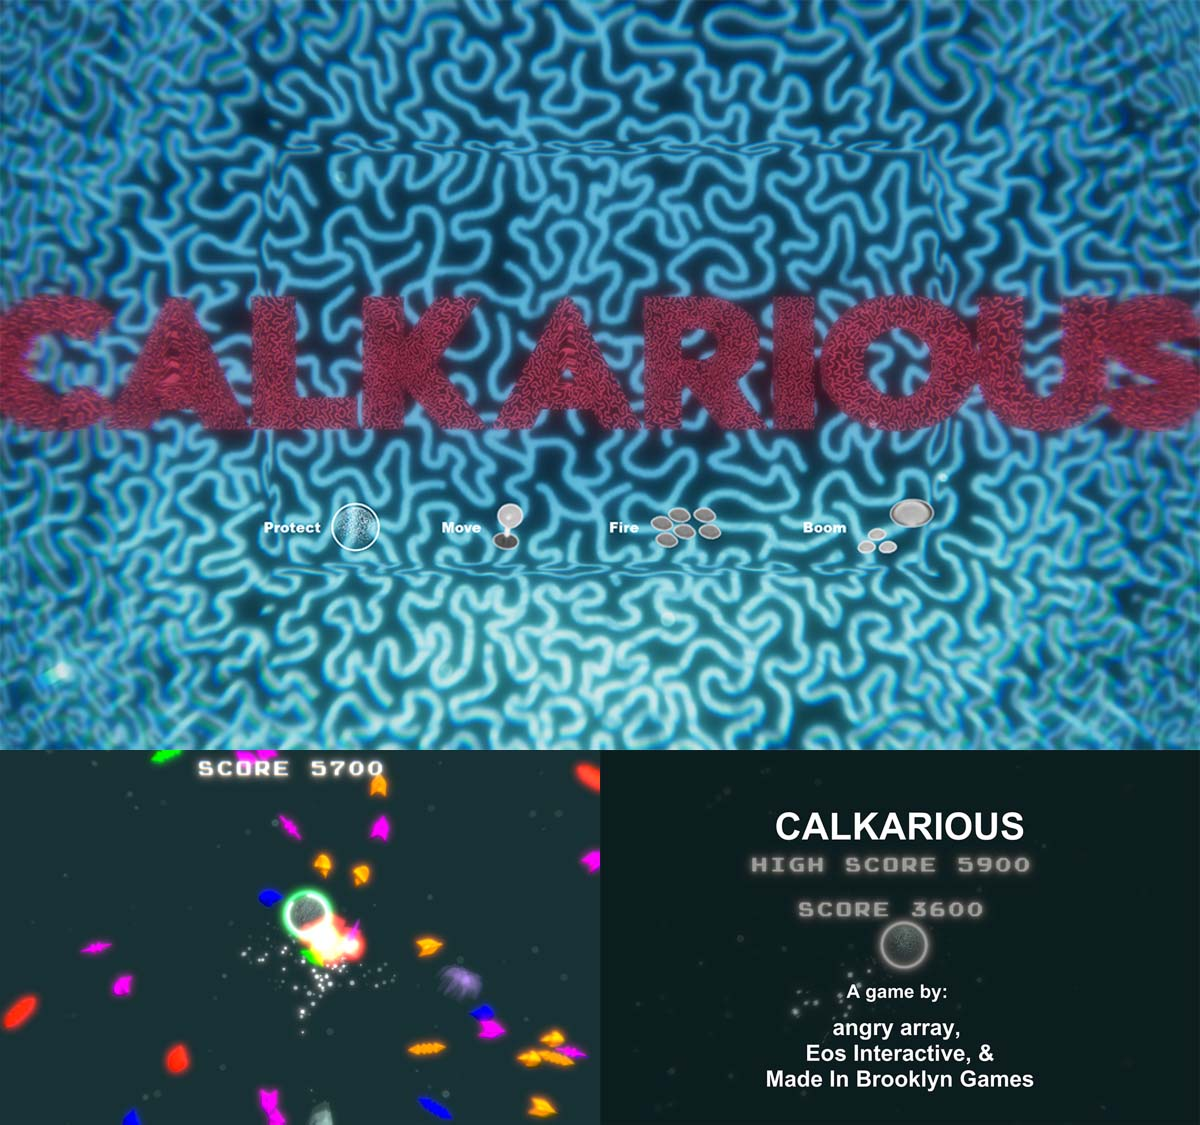 """Come play CALKARIOUS created during """"The Indie Game Jam - Presented by Schick Hydro"""" at The Game Awards' first-ever arcade at the Microsoft Theater in LA on Dec. 7. Download at https://playcrafting.itch.io/ on Dec. 7."""